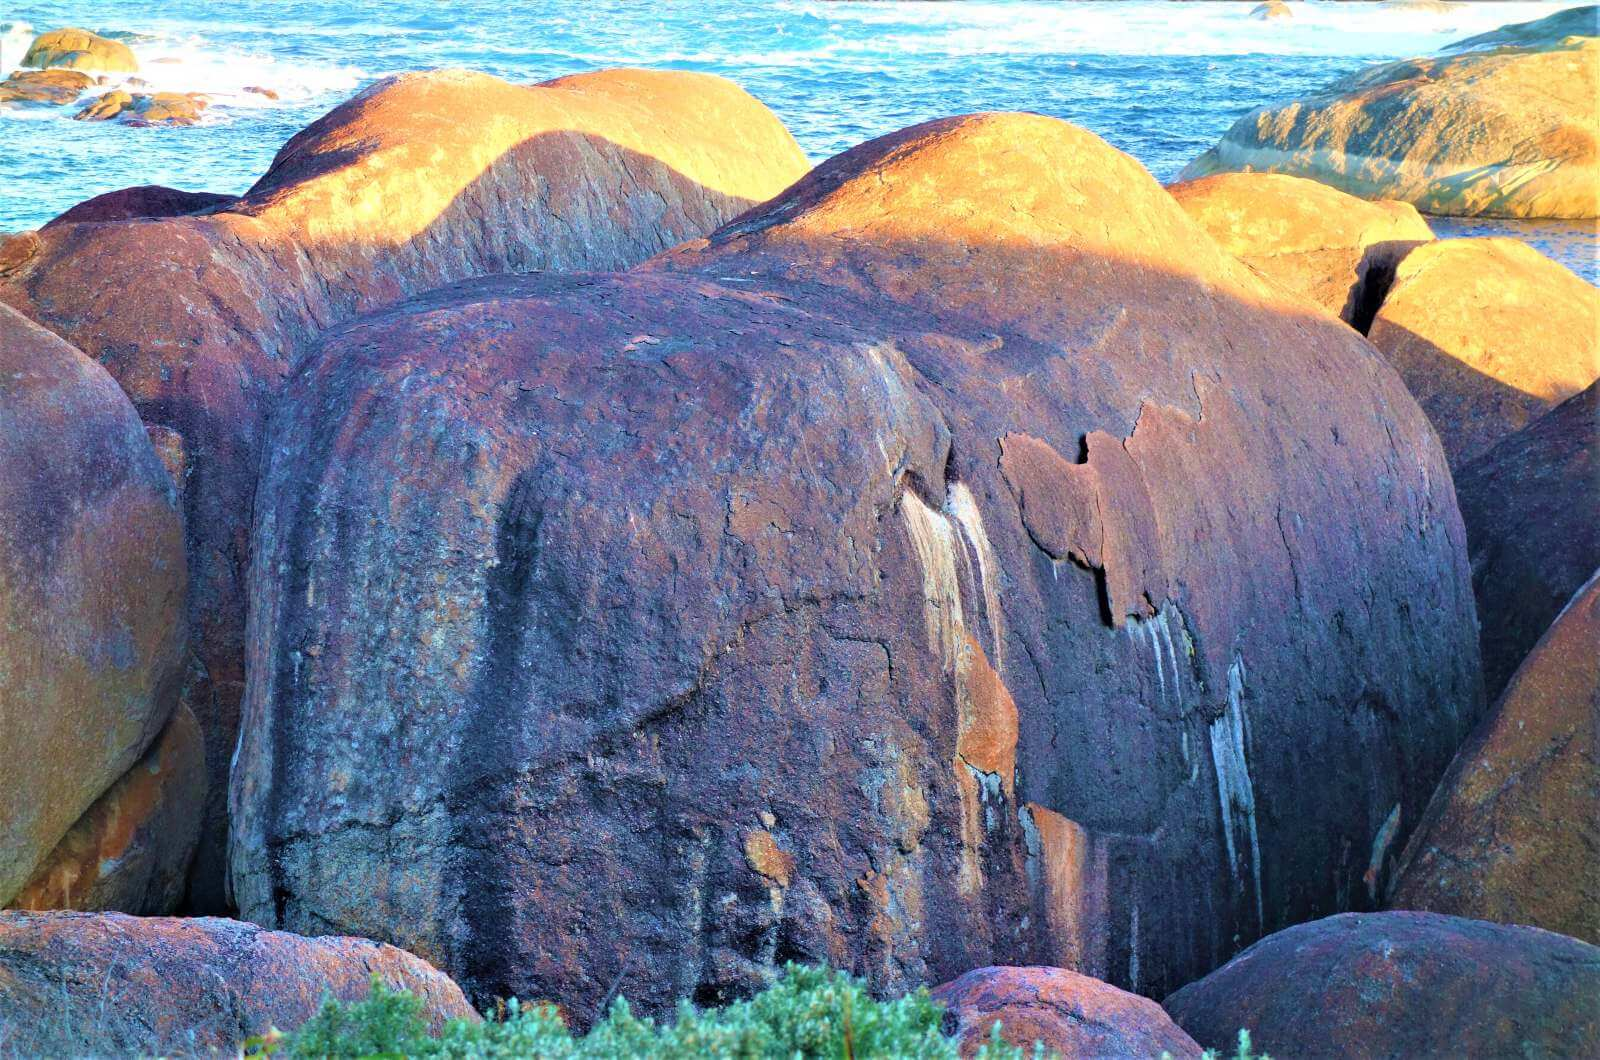 Elephant Rock in Australien